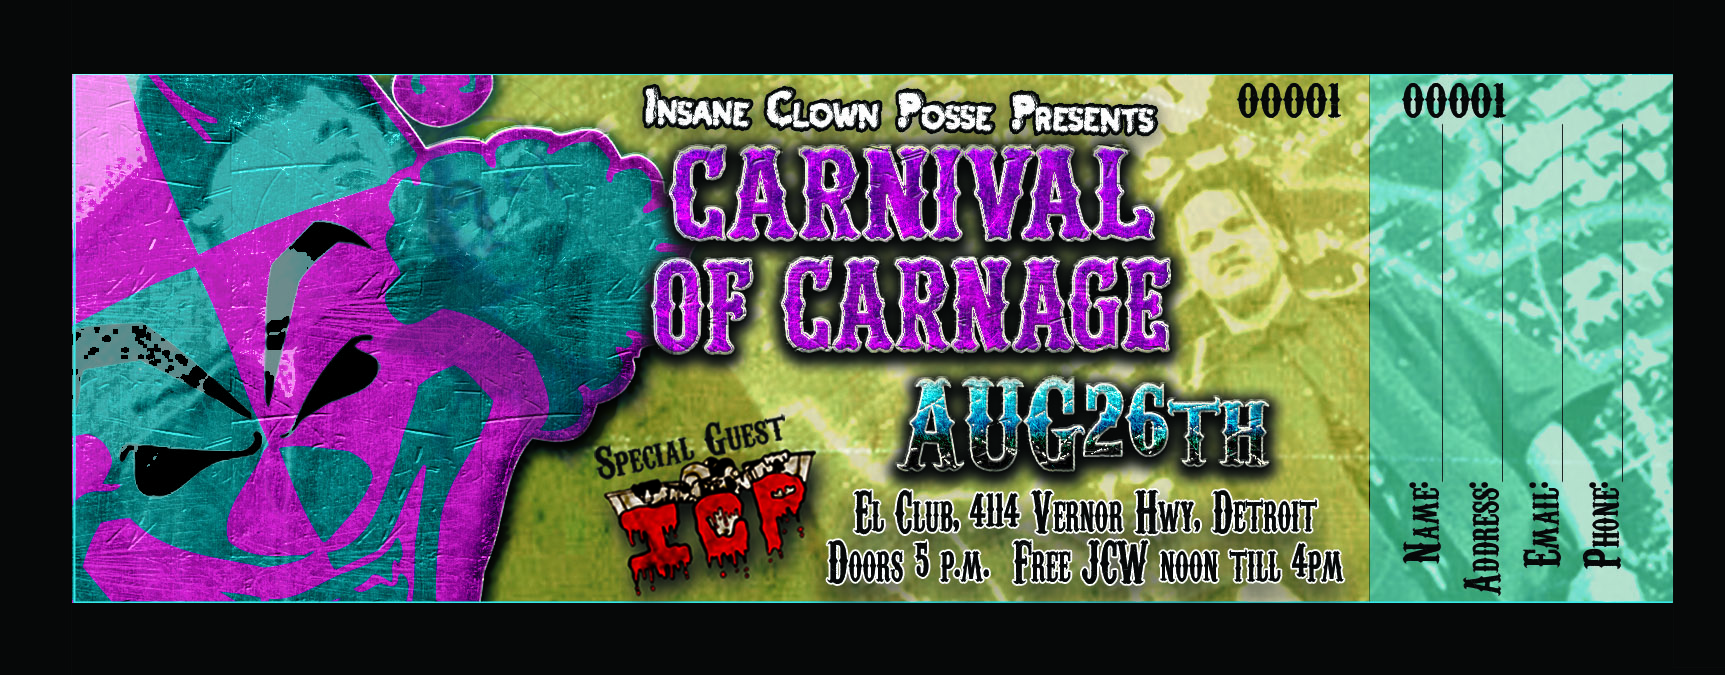 ICP Carnival Show Ticket